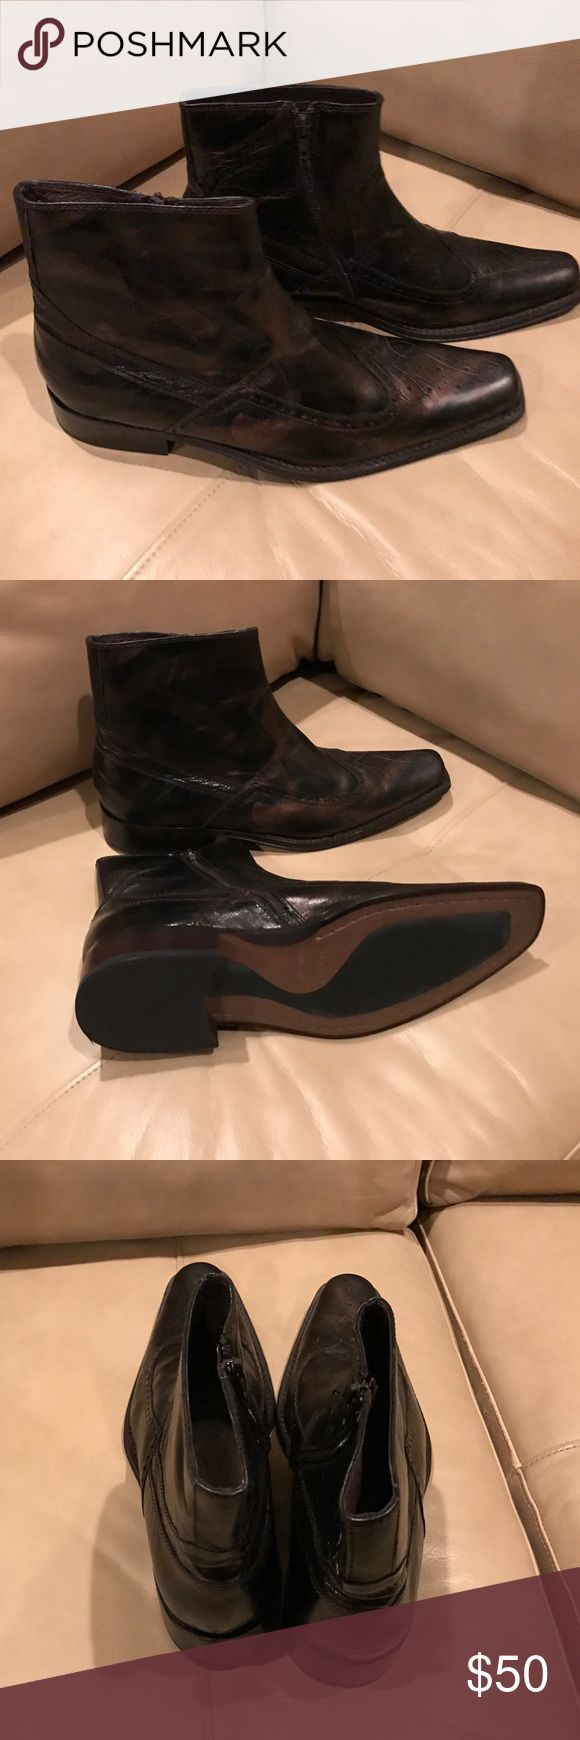 Men's Aldo Boots NWT Very nice boots from Aldo. Size 9 (42). Color is blend of black and brown. New, never worn. Aldo Shoes Boots